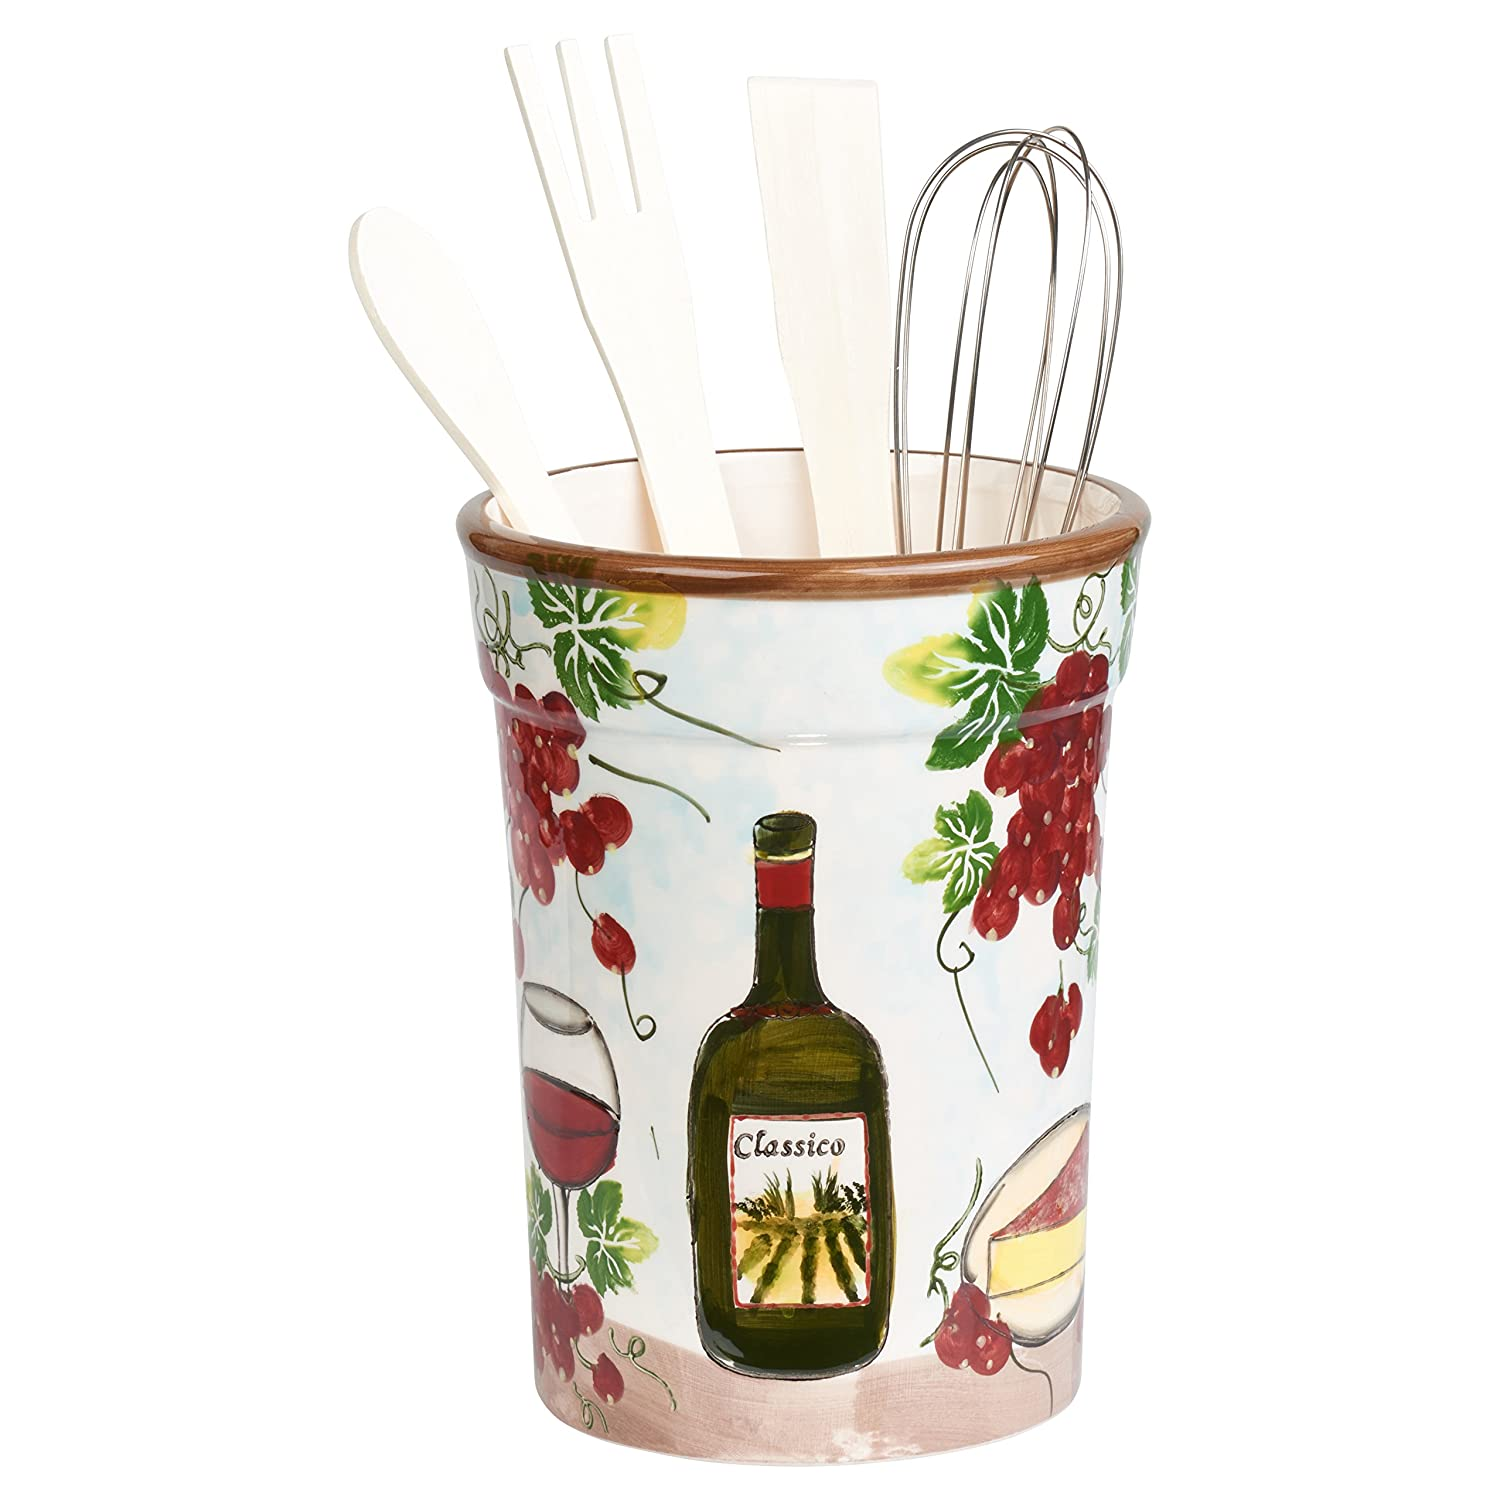 Lorren Home Trends P2064 Utensil Holder Grape Ceramic, Purple